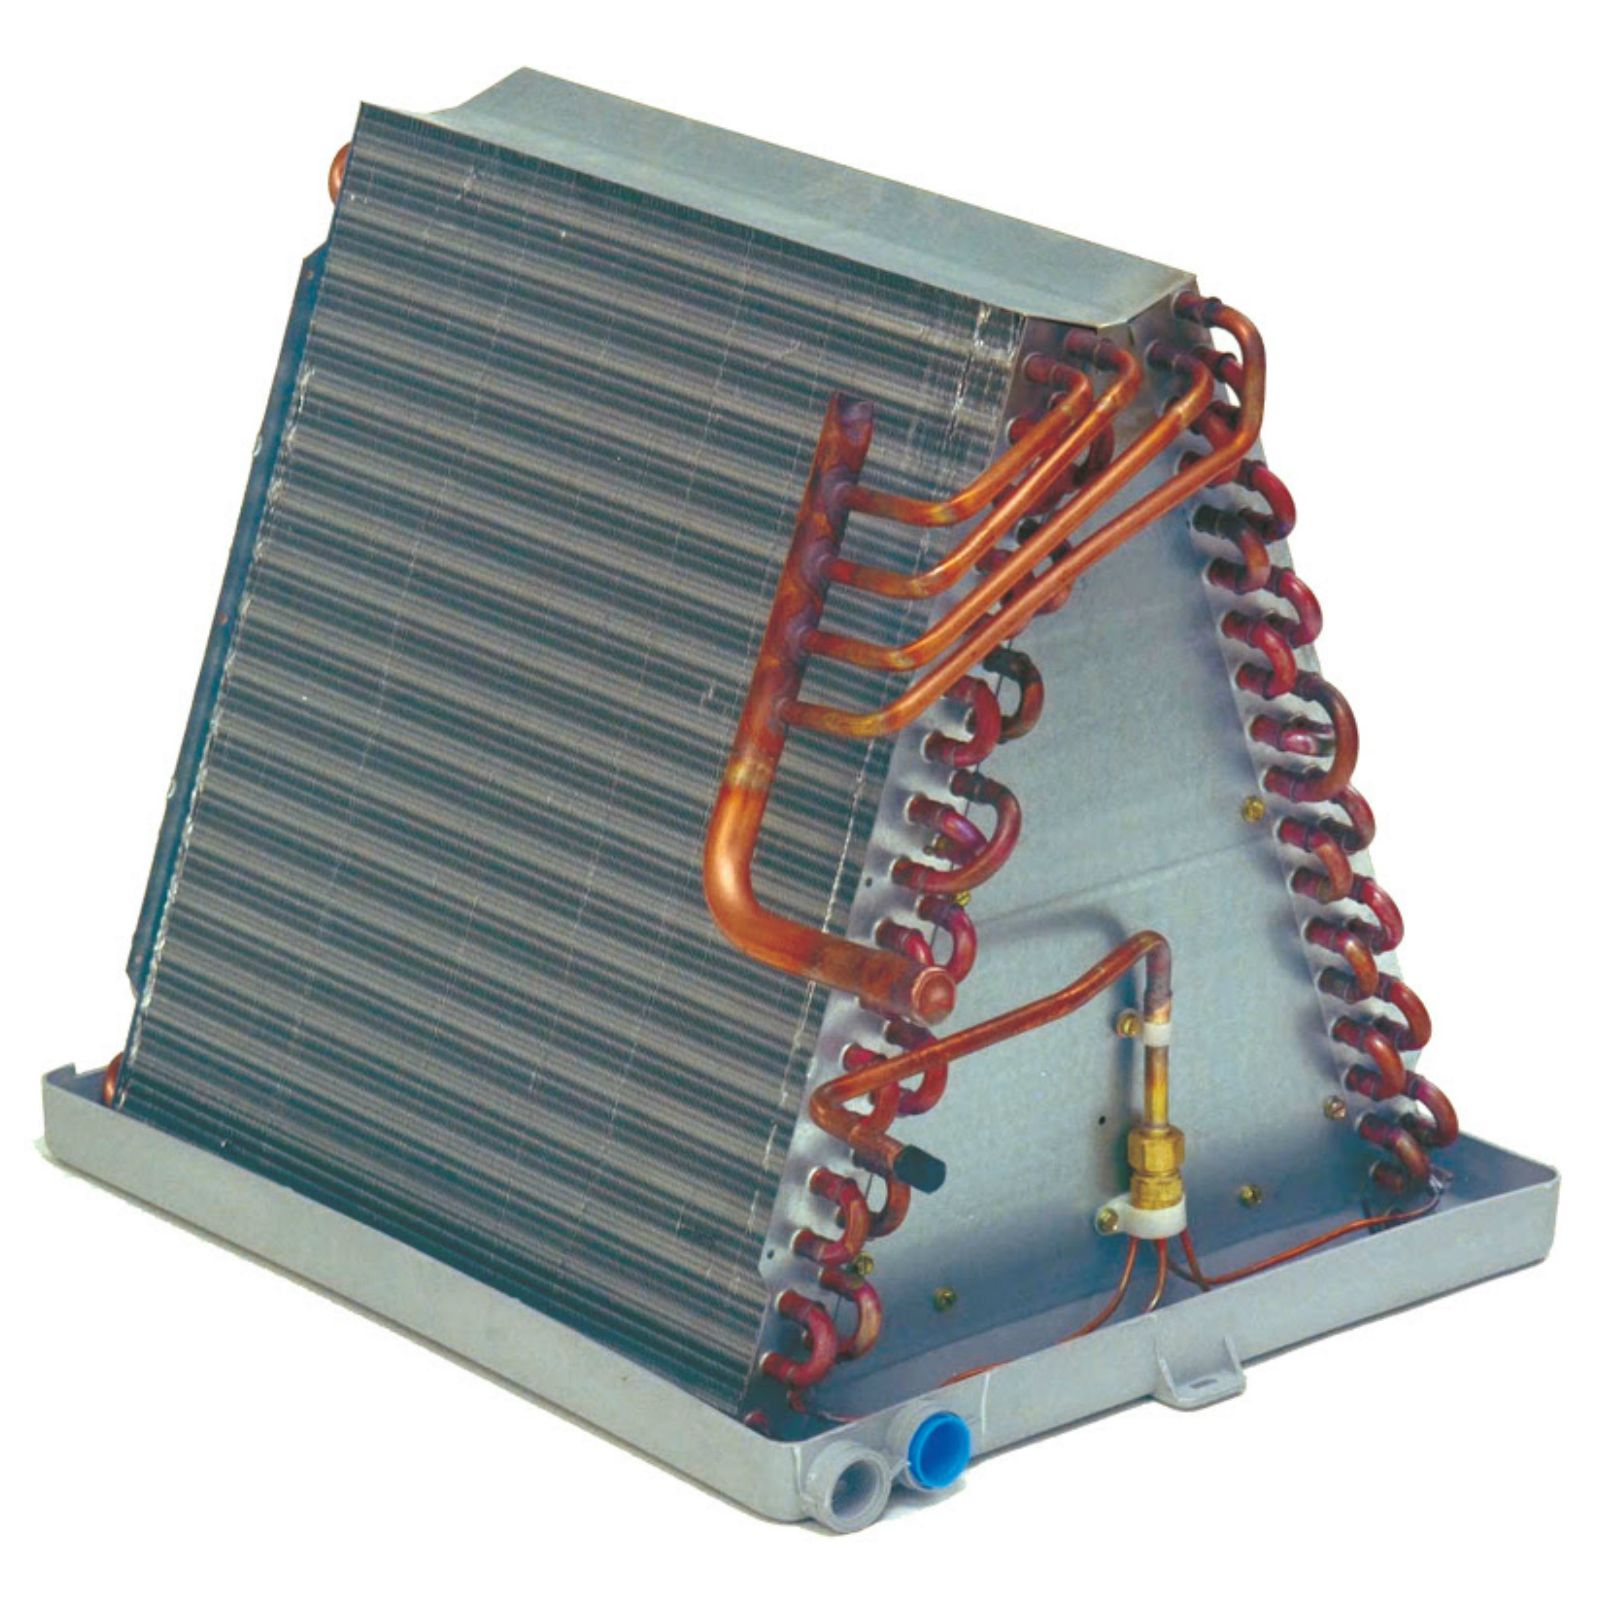 "Tempstar EPA36B15WT - 3 Ton, R22, Uncased, A Type Piston Replacement Evaporator Coil, 14.75"" Drain Pan (for 15.5"" Cabinet)"